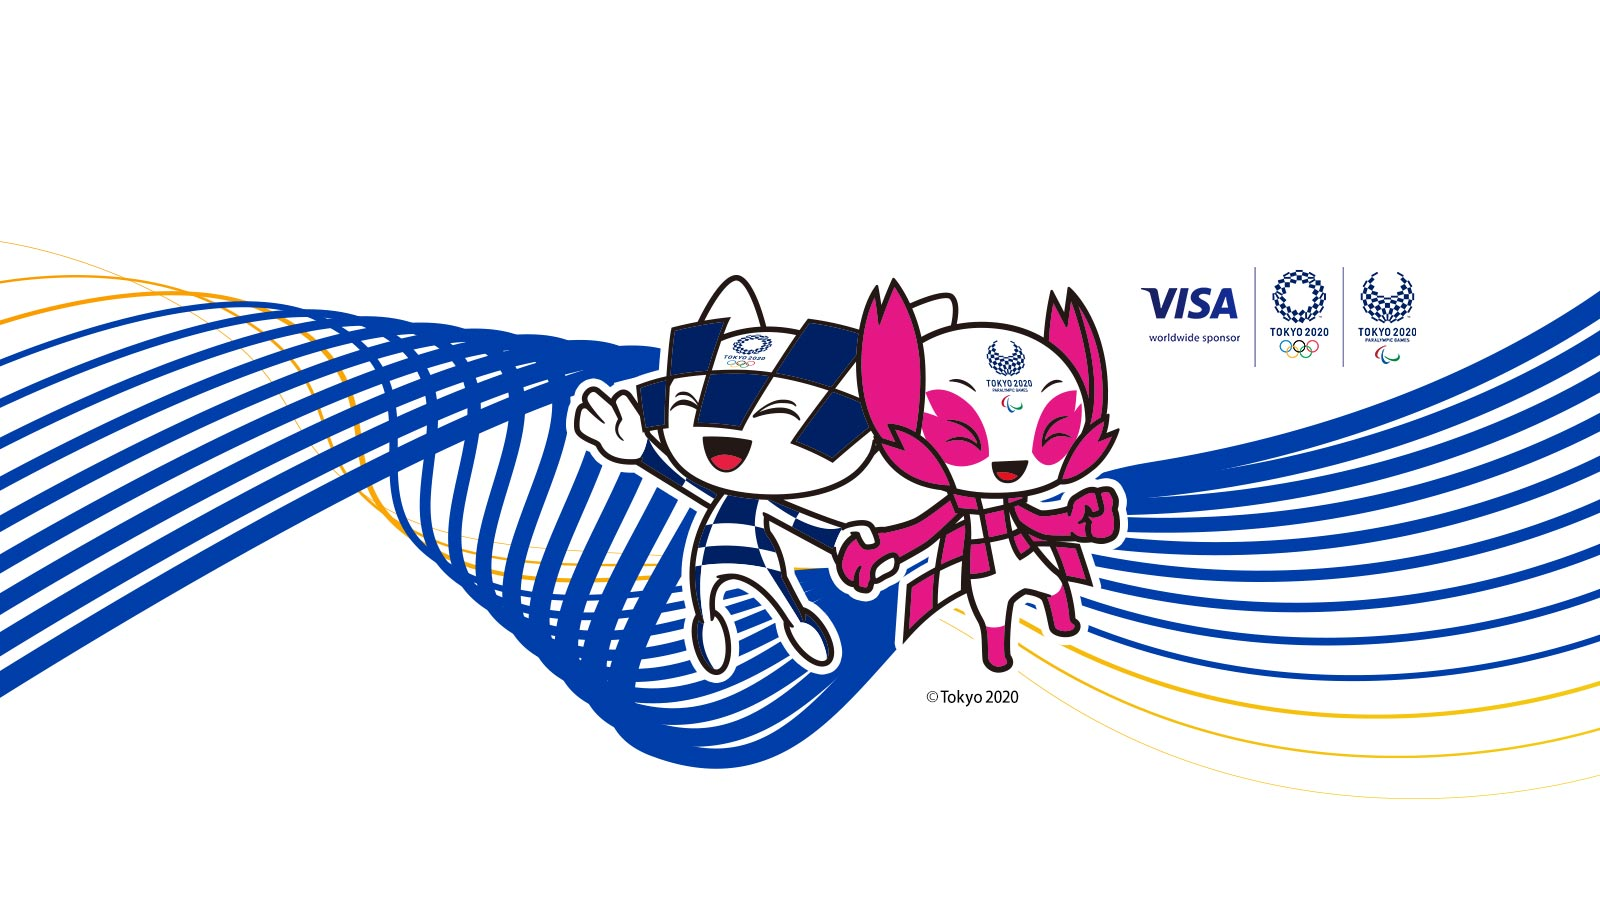 about-visa-promotions-maquee-1600x900